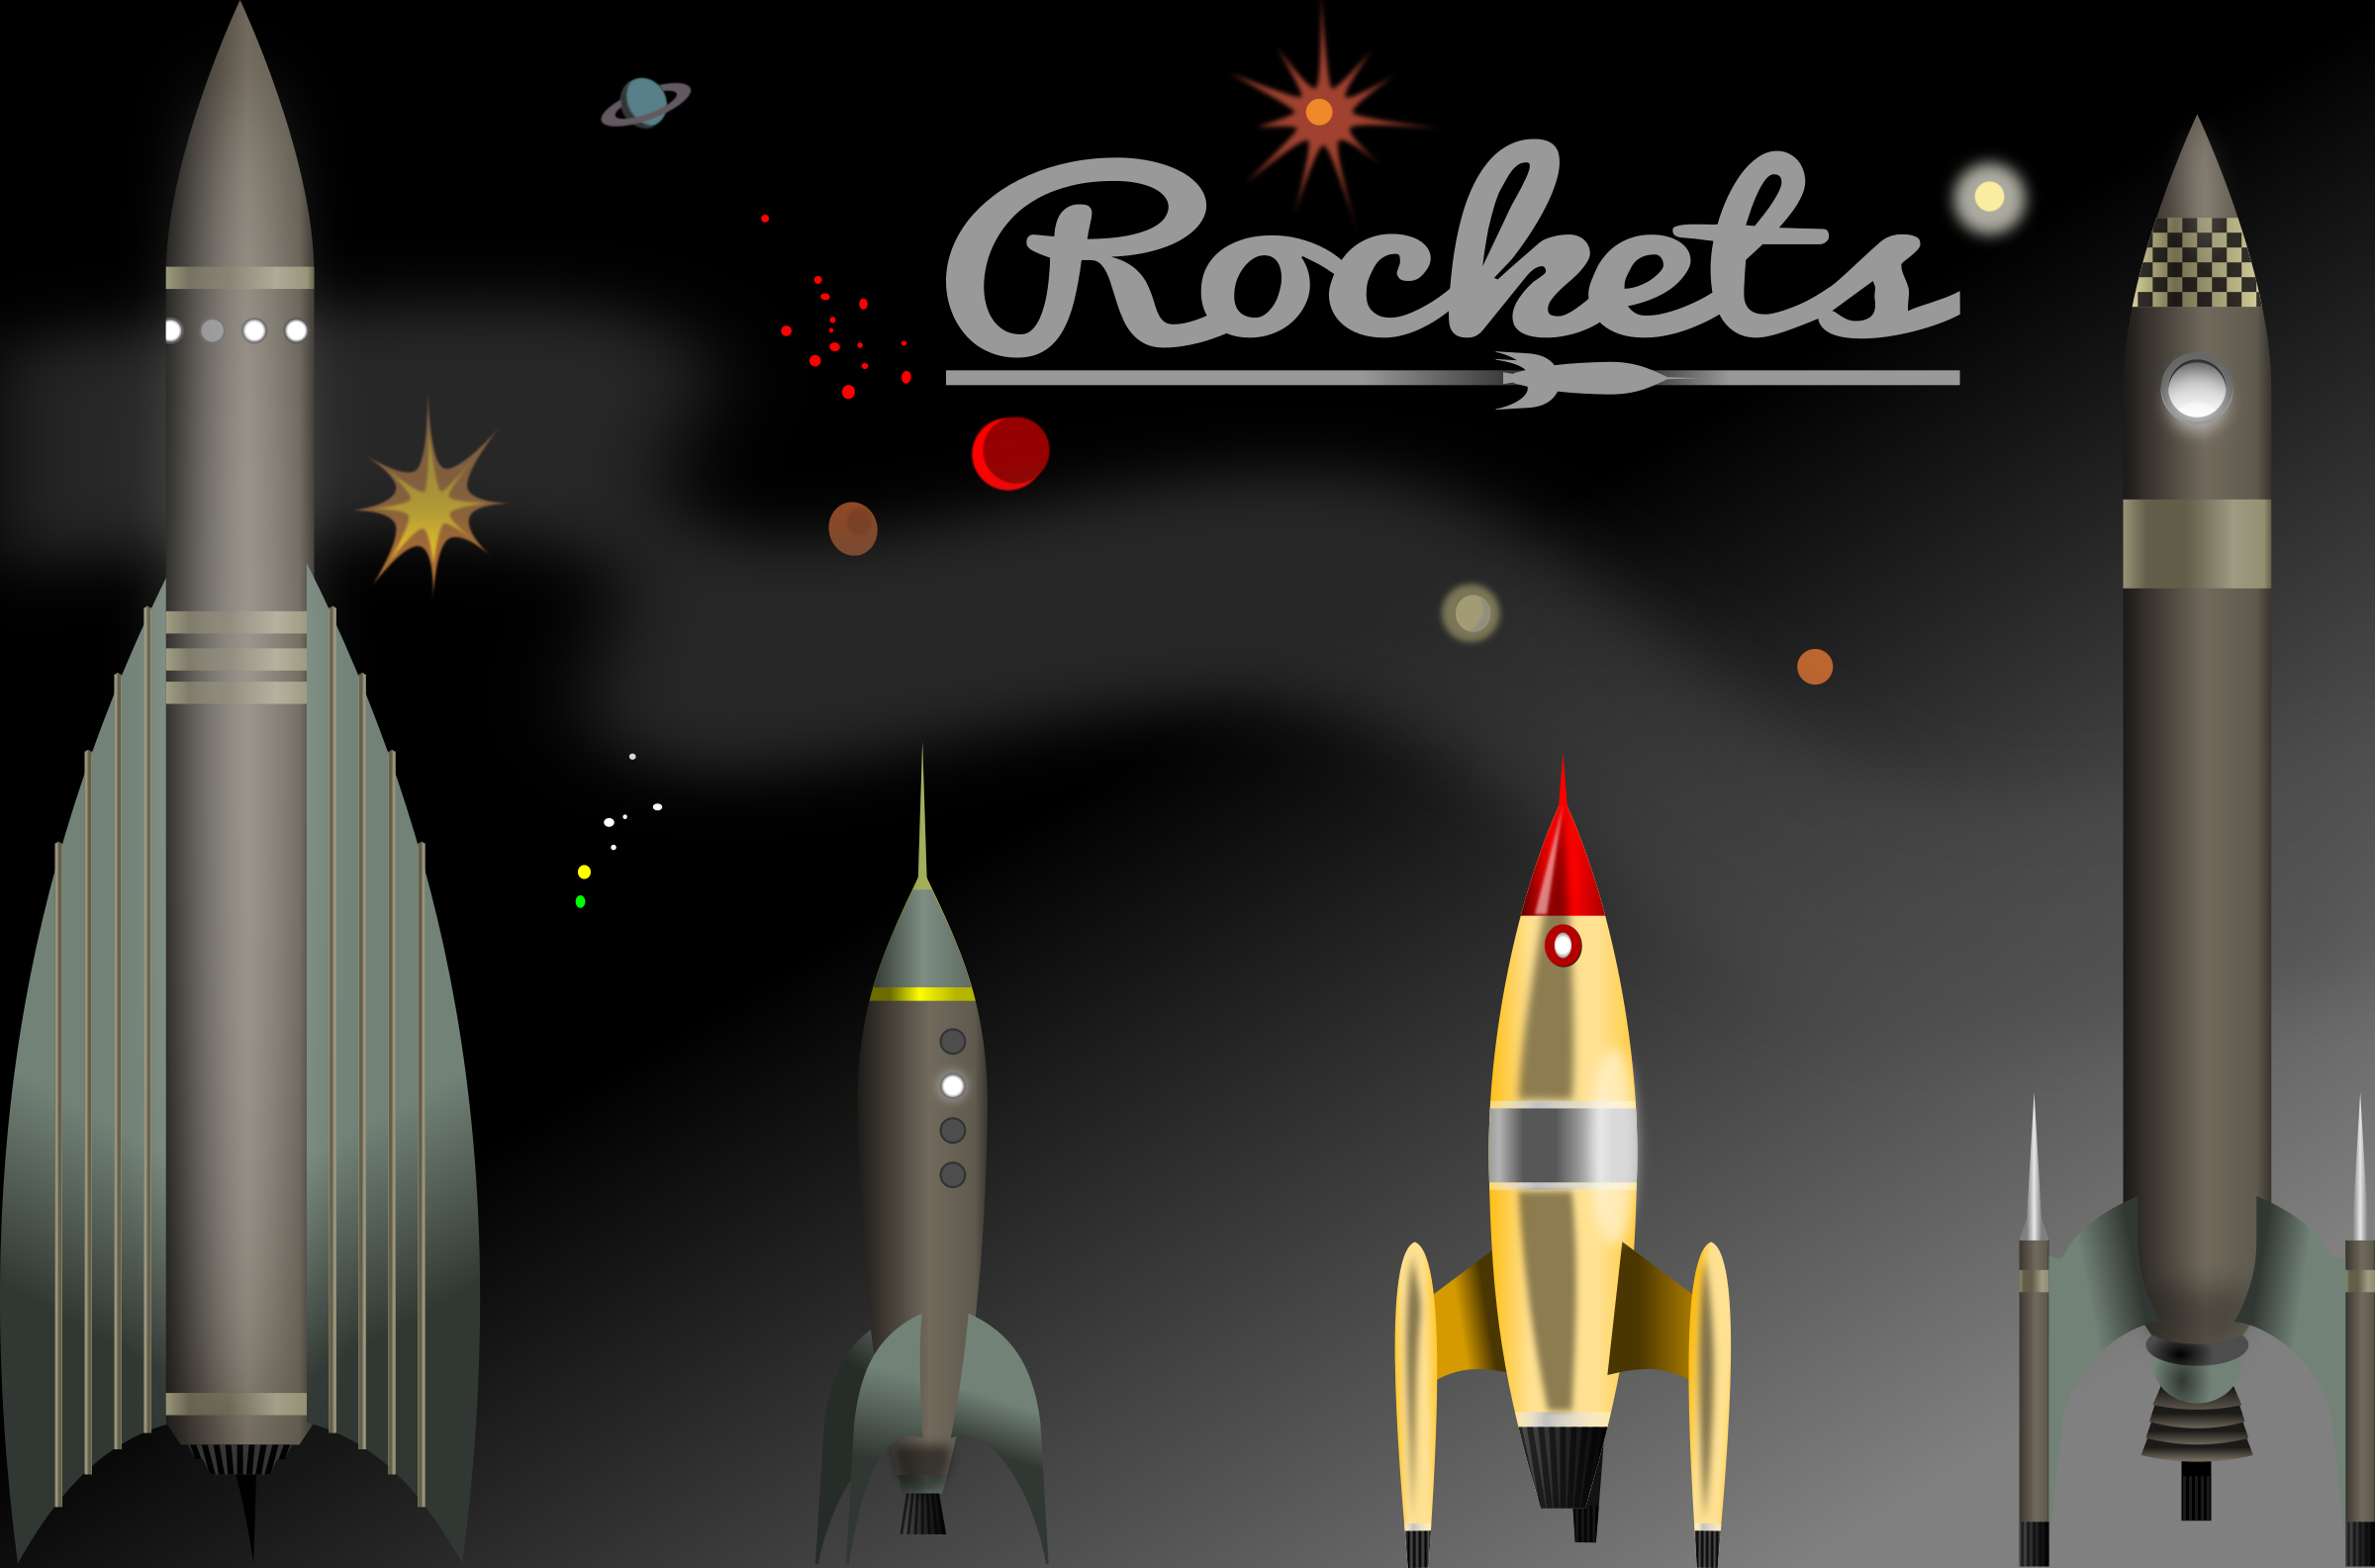 Rockets by conte magnus